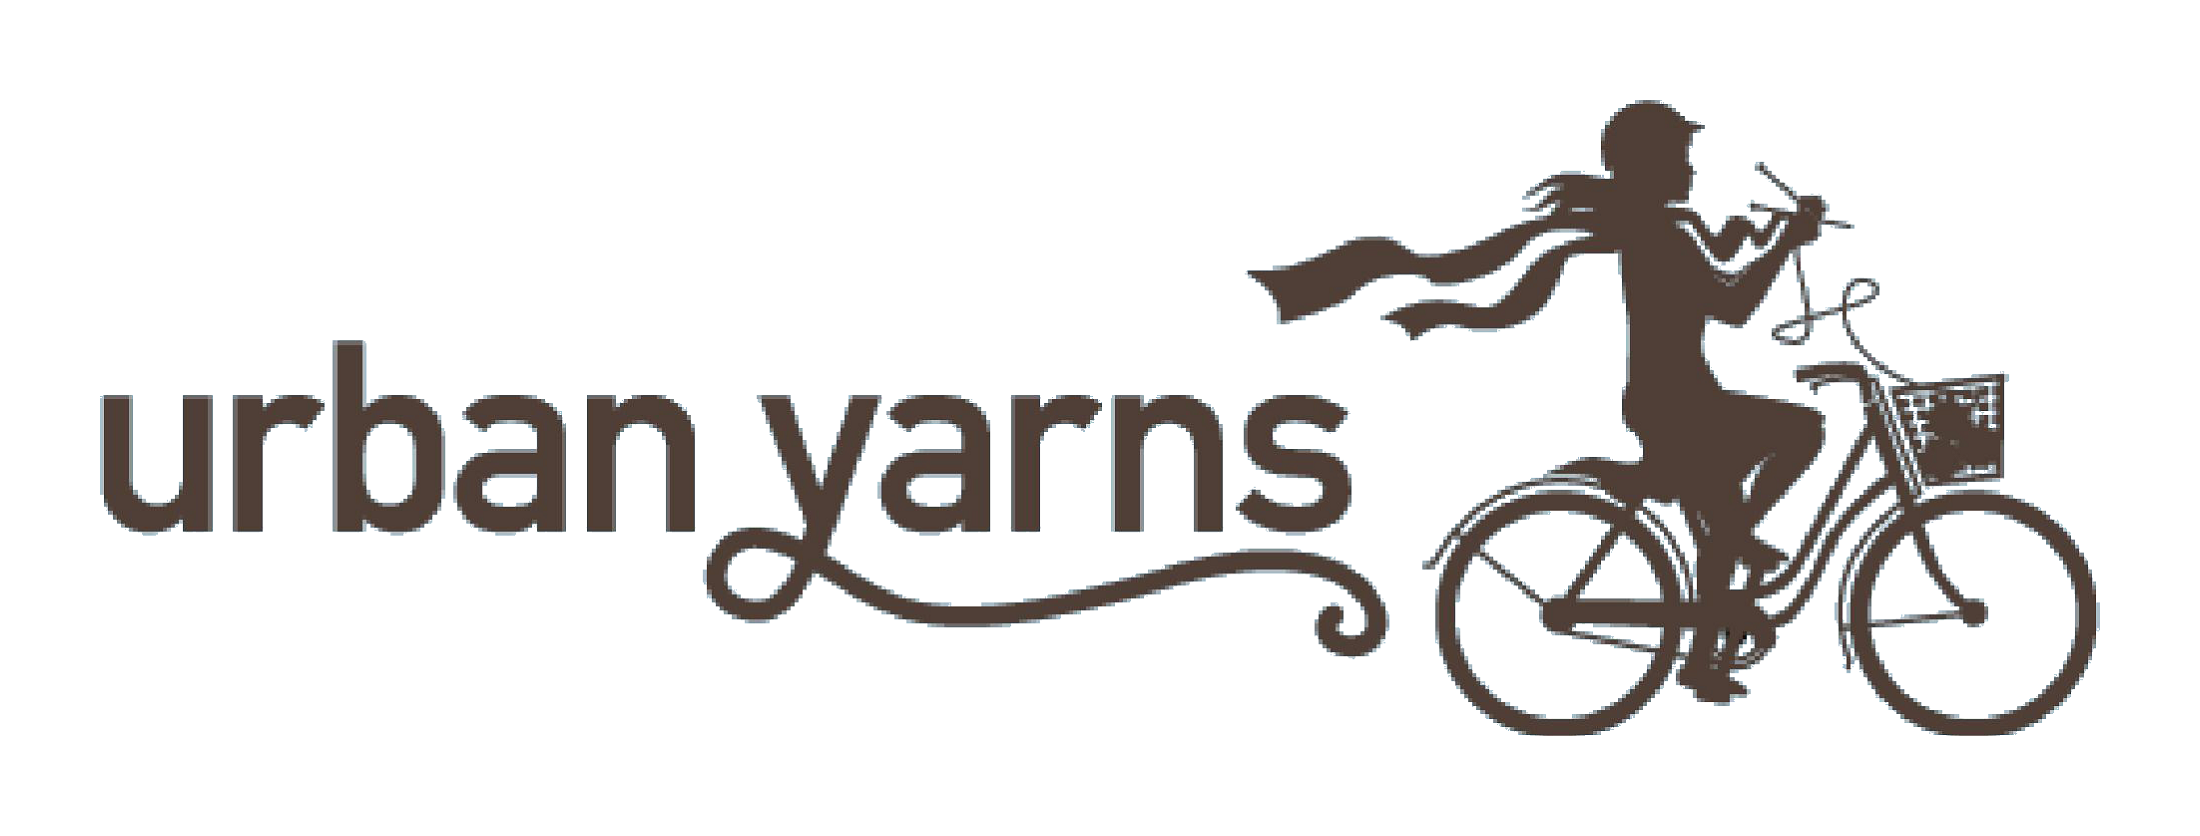 Urban Yarns logo.png